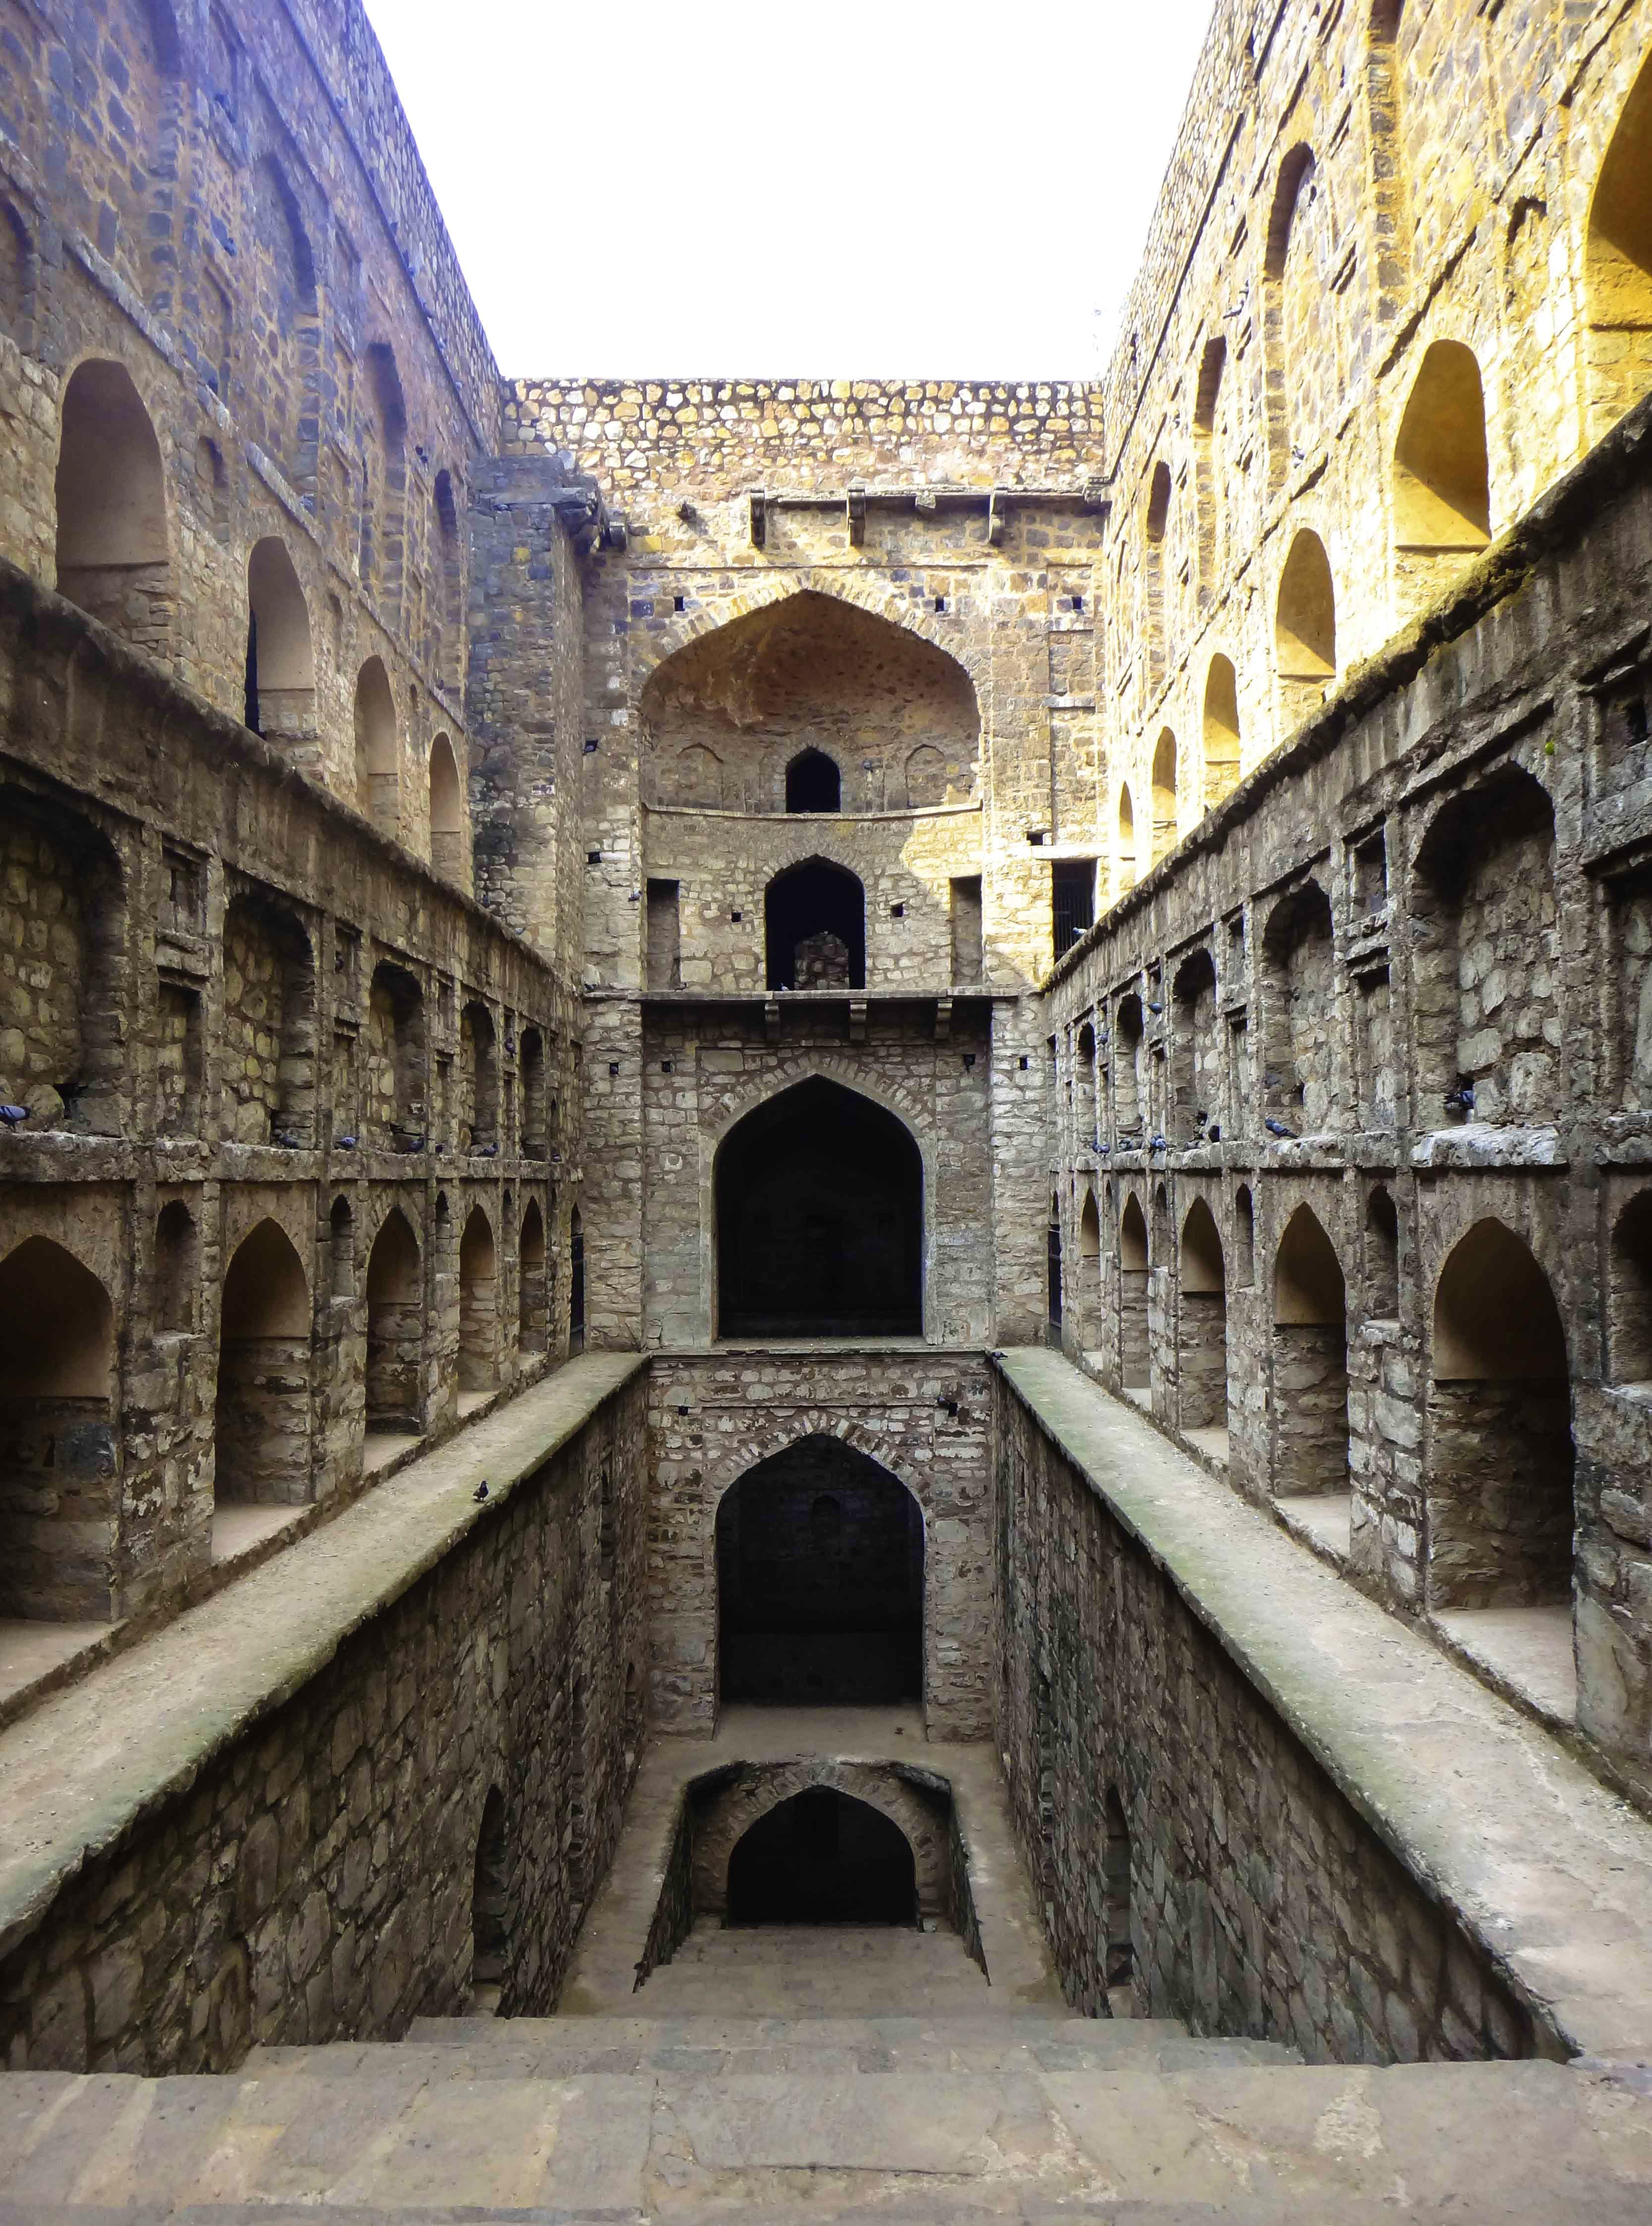 Landmark,Holy places,Architecture,Arch,Historic site,Fortification,Building,Ancient history,Caravanserai,History